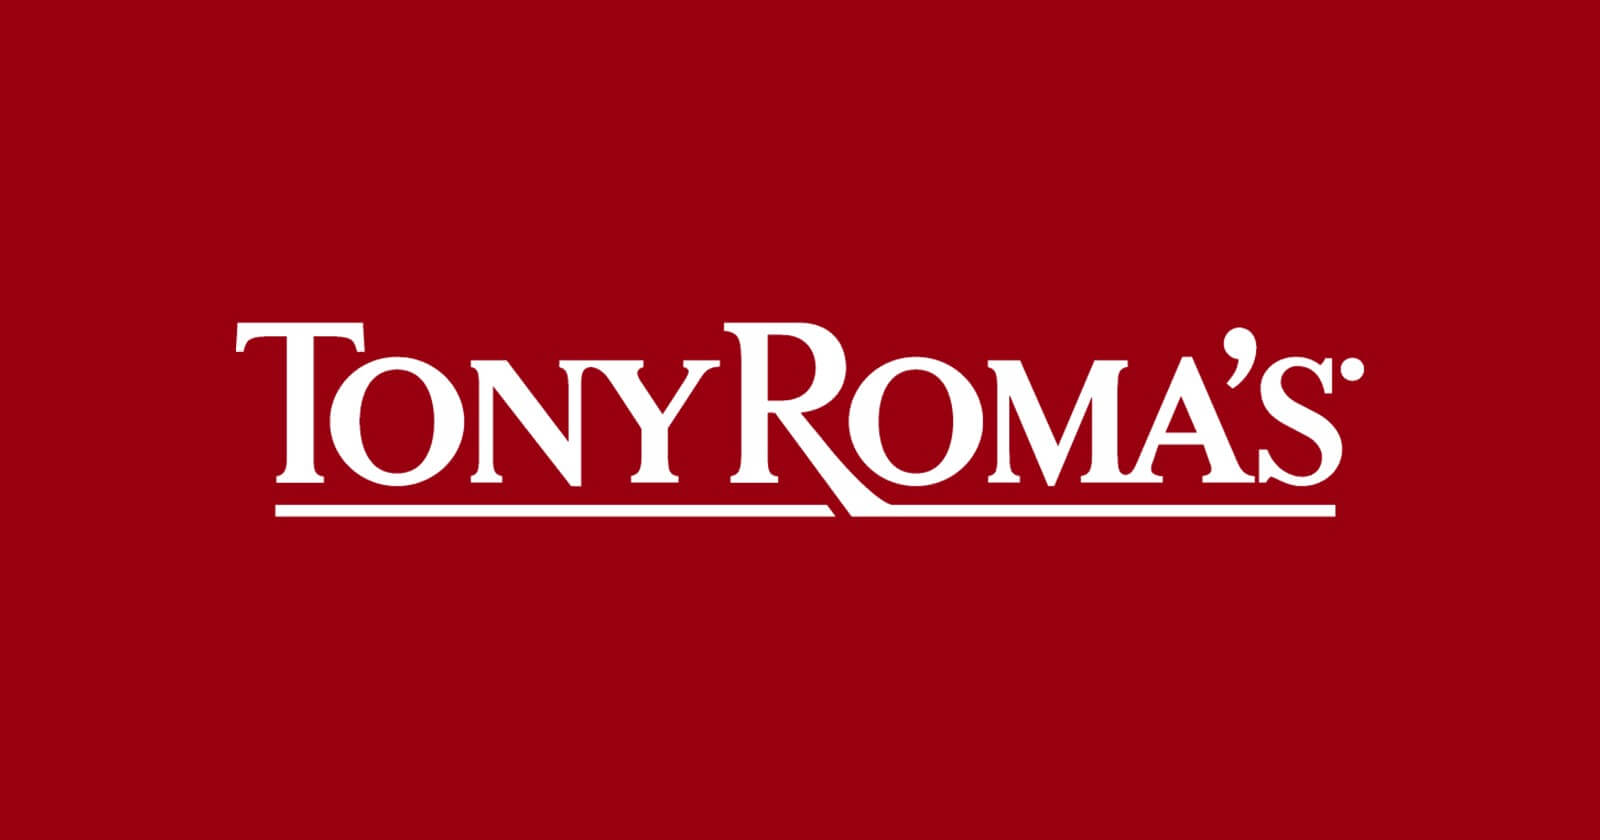 Tony Roma's Signature BBQ Sauces Coming to International Supermarkets through American Trading International Licensing image